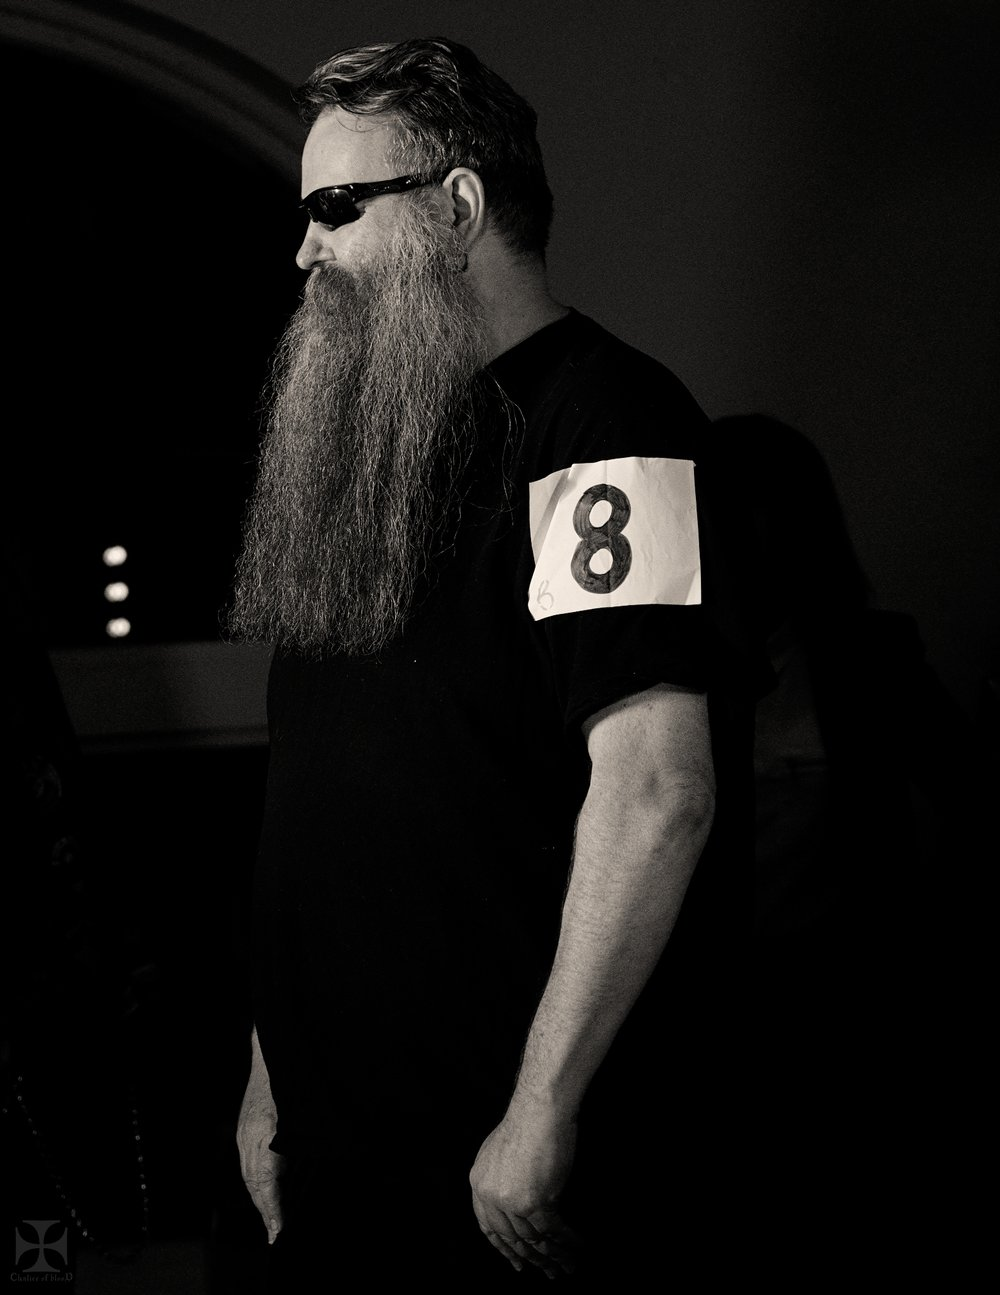 2018.09 5th Beard and Moustache Competition - 0236-Exposure.jpg